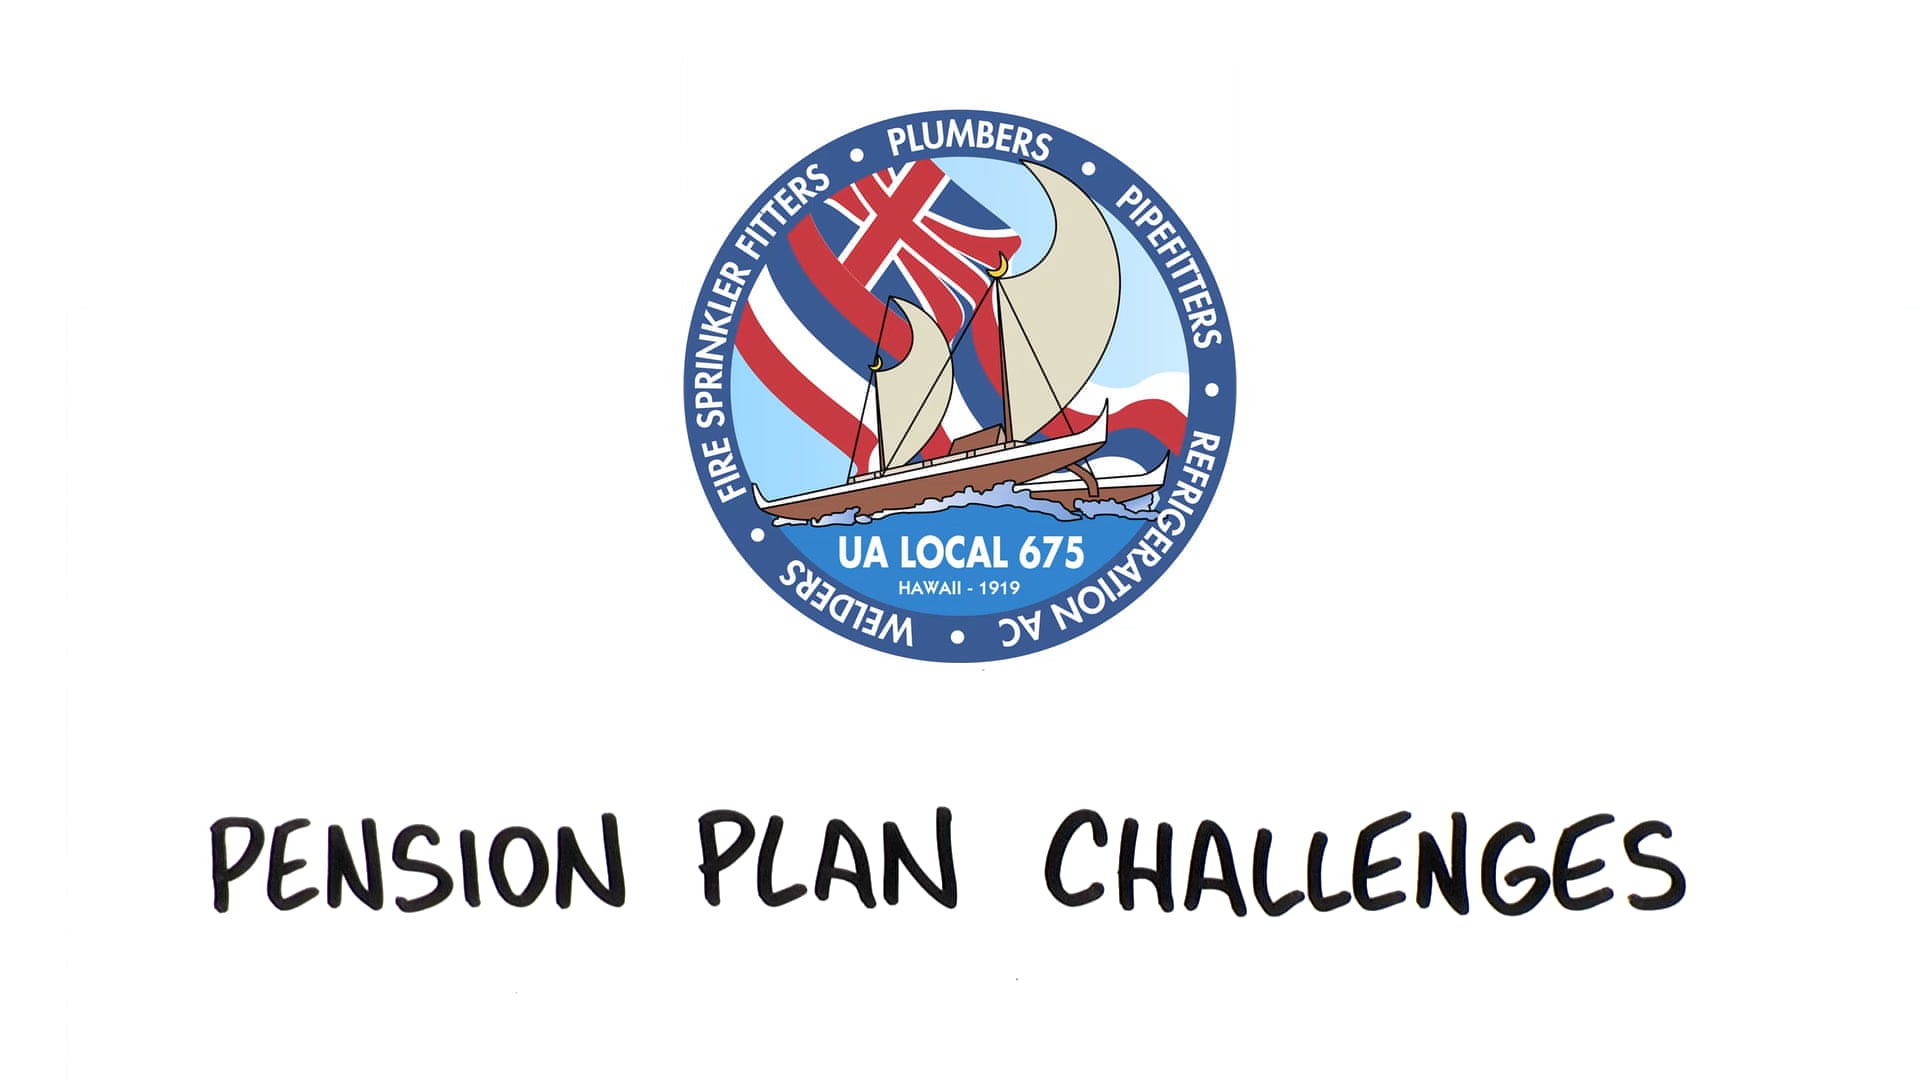 Pension Plan Challenges